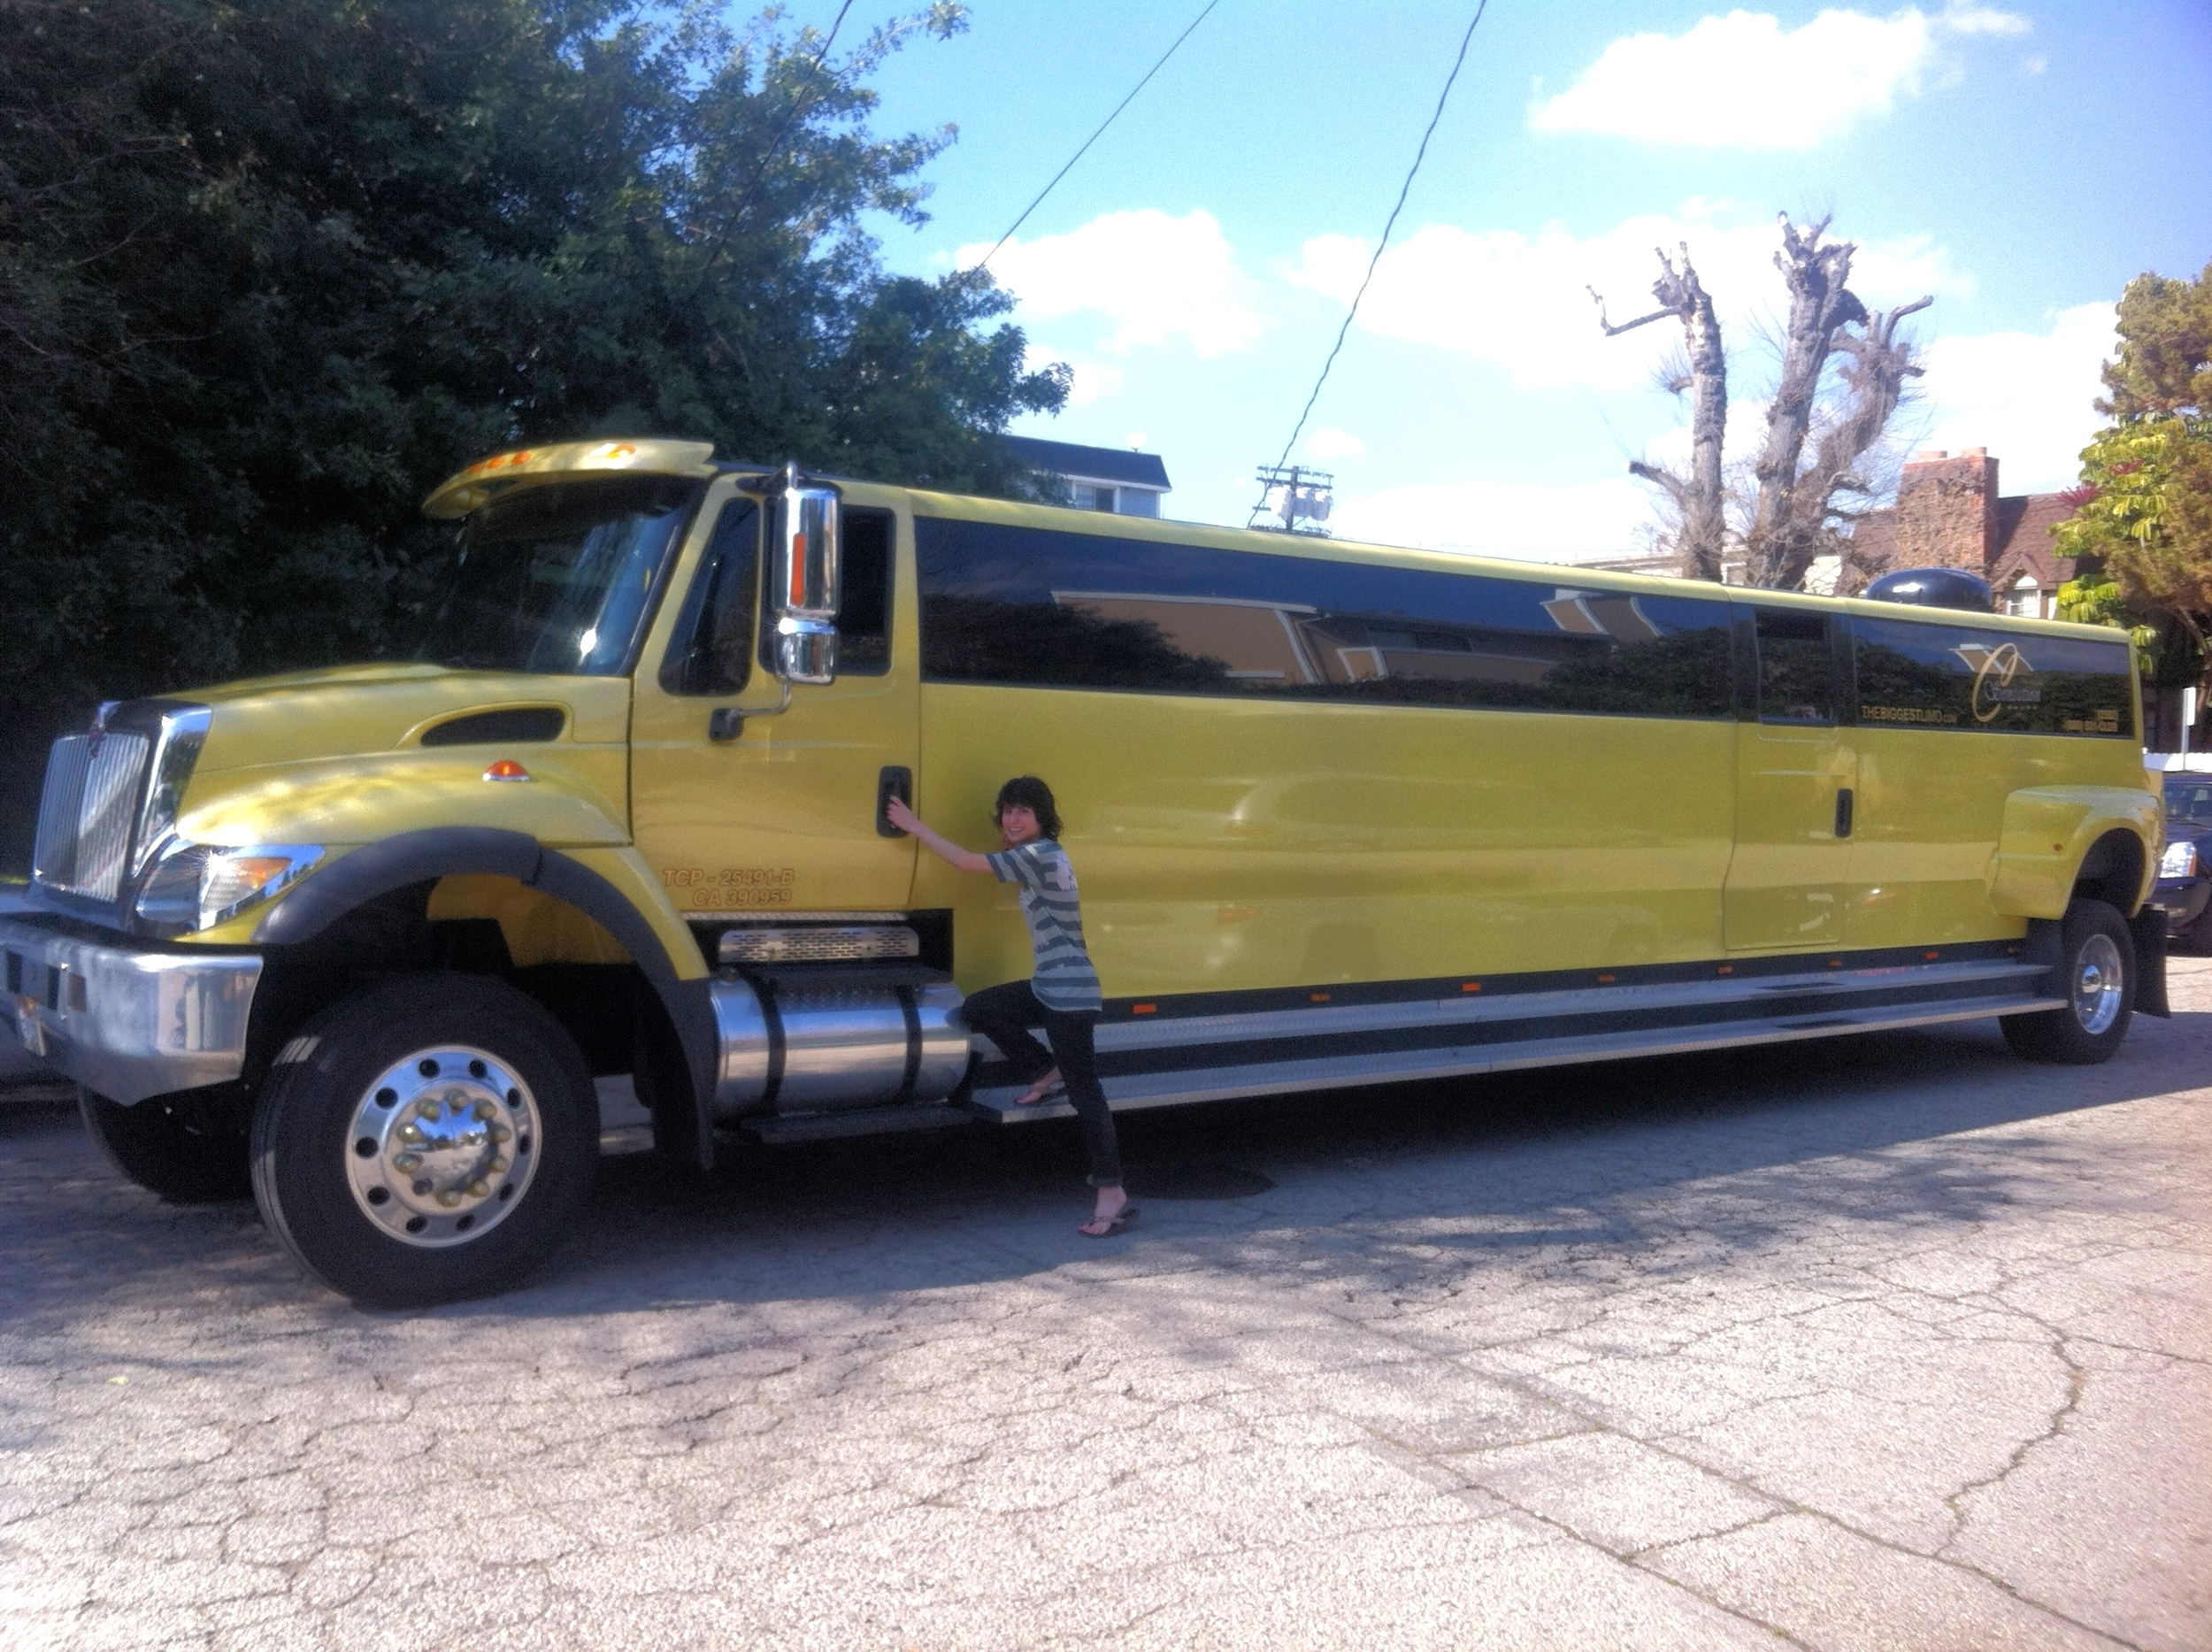 Me and the world's biggest limo